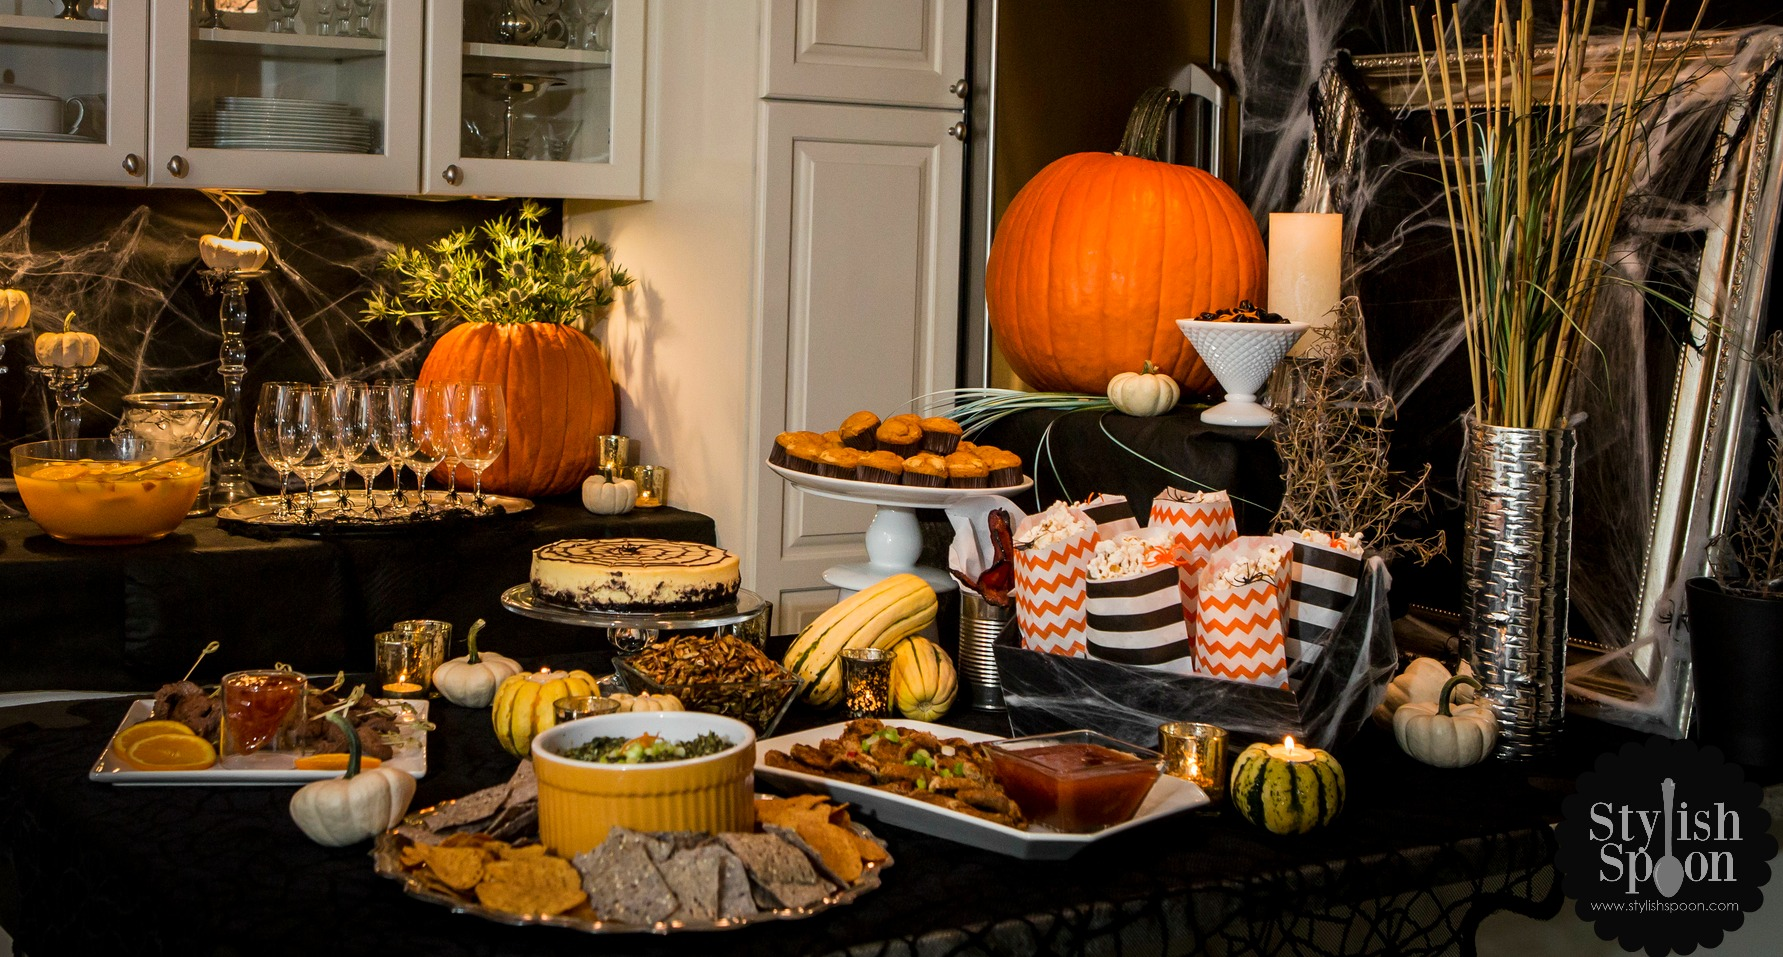 Kids Cocktail Party Ideas Part - 26: Halloween Cocktail Party Menu